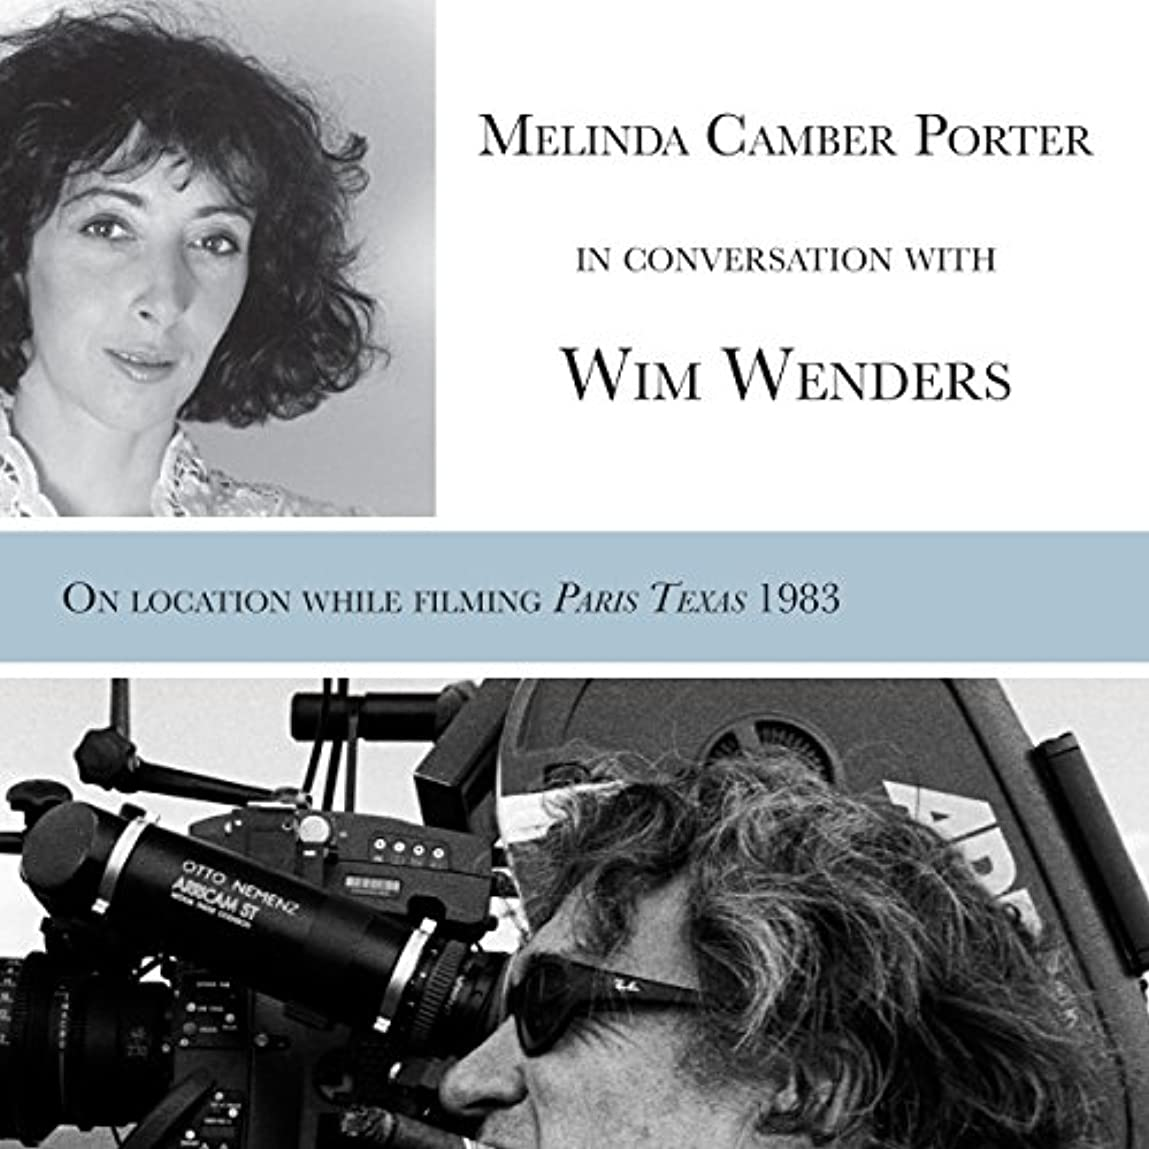 インターネットメンター感謝しているMelinda Camber Porter in Conversation with Wim Wenders: On Set of Paris, Texas 1983, Vol 1, No 3